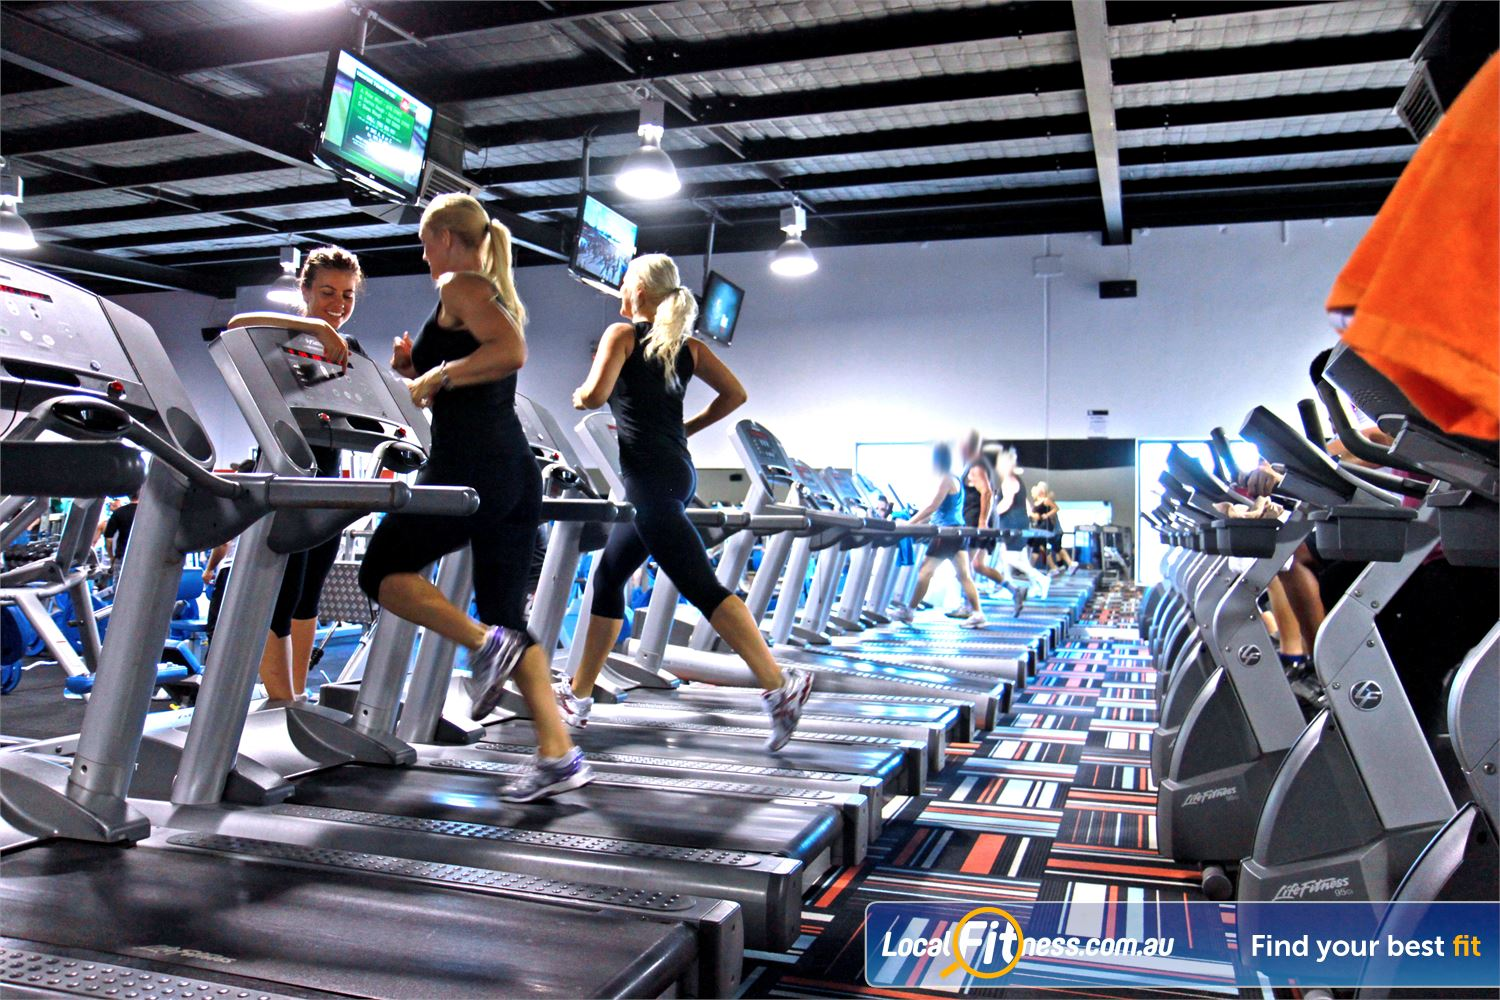 Goodlife Health Clubs Kingsway Madeley Experience state of the art cardio with more machines than you can imagine!